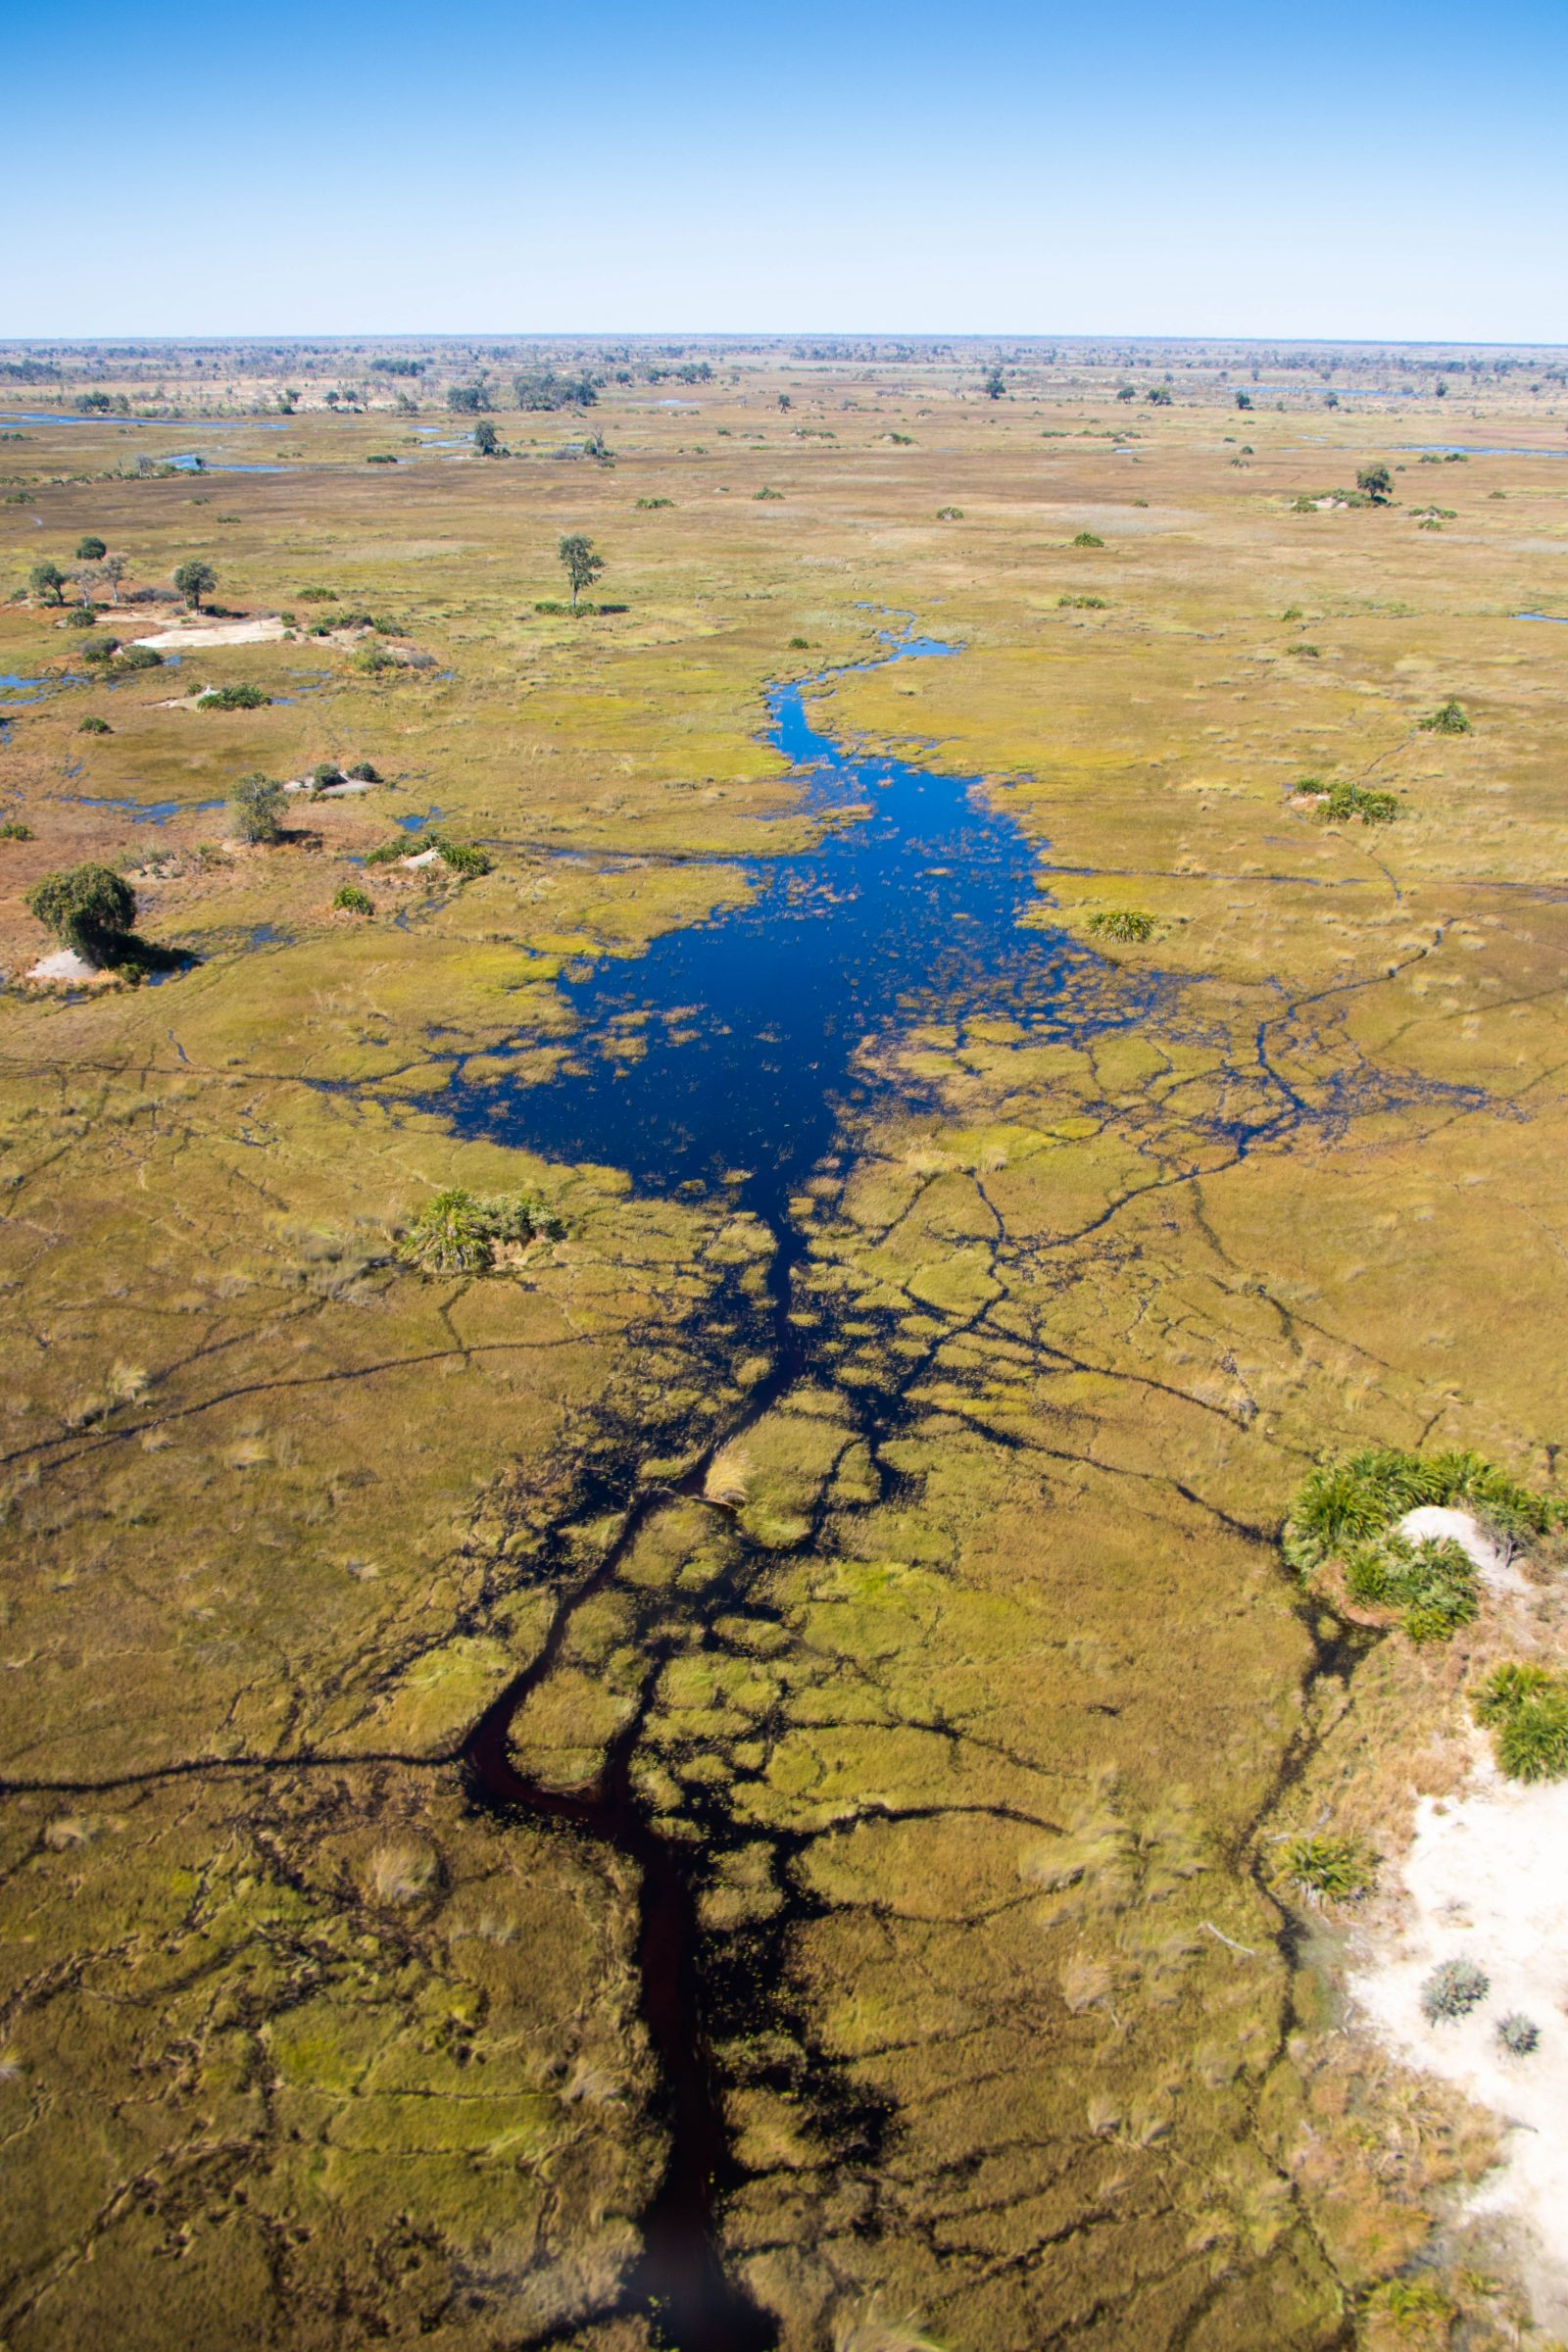 Over the Okavango